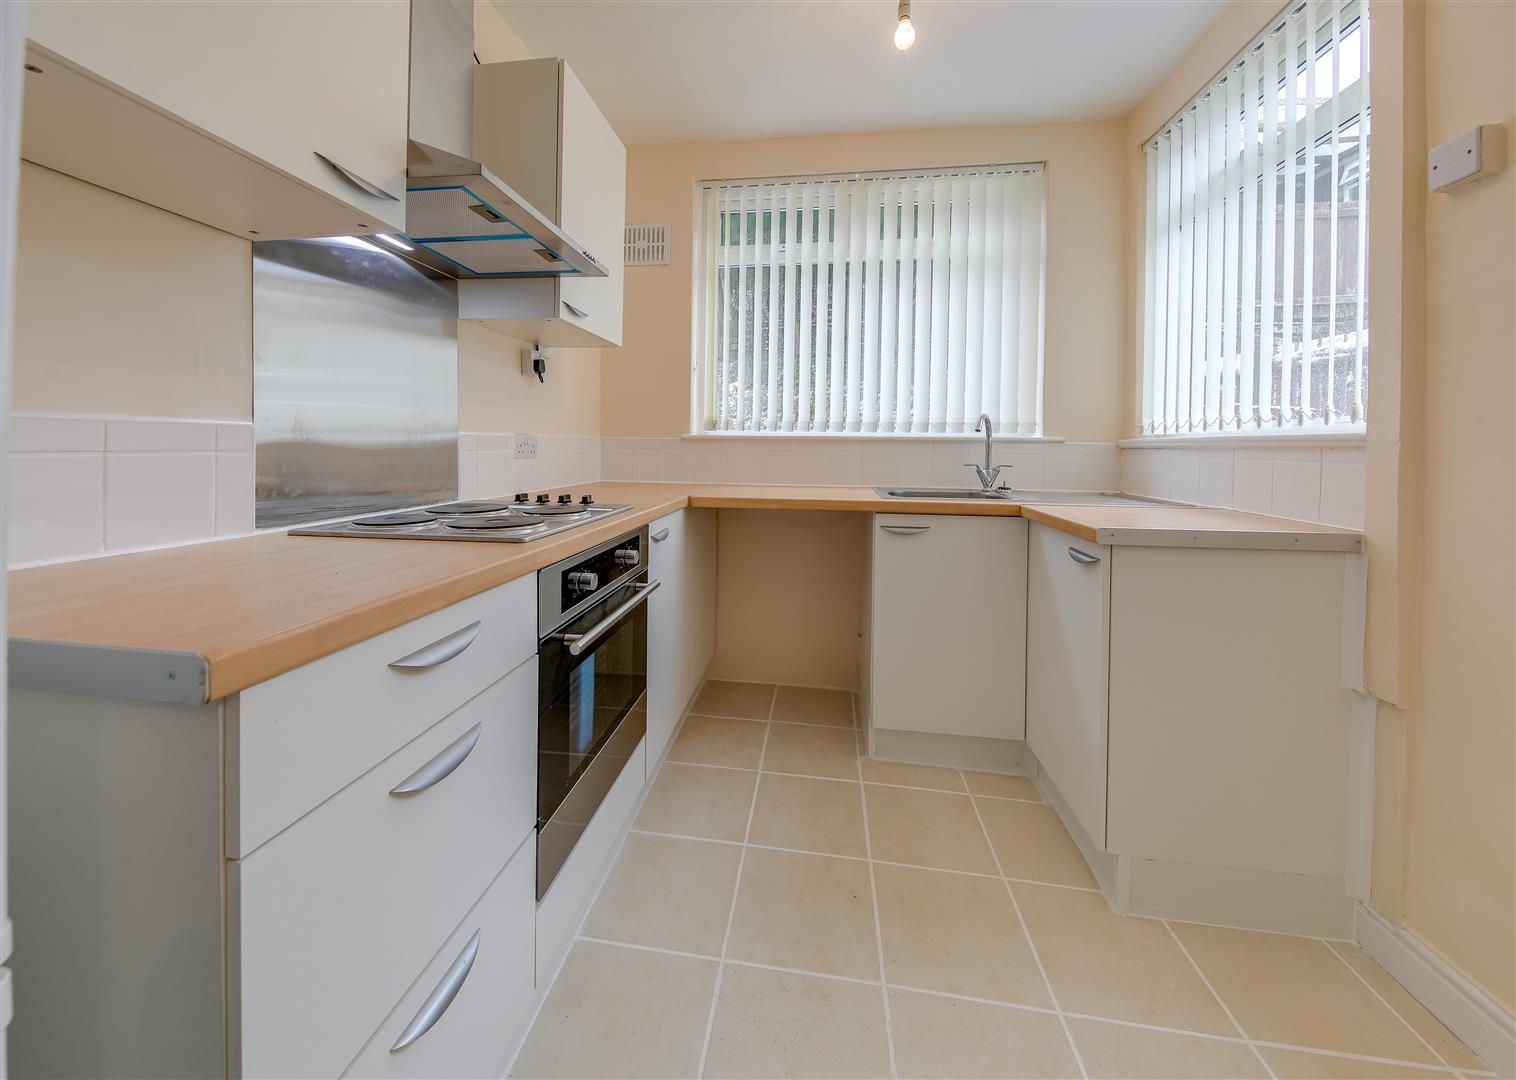 2 Bedrooms Terraced House for sale in Burnley Road, Weir, Bacup, Rossendale